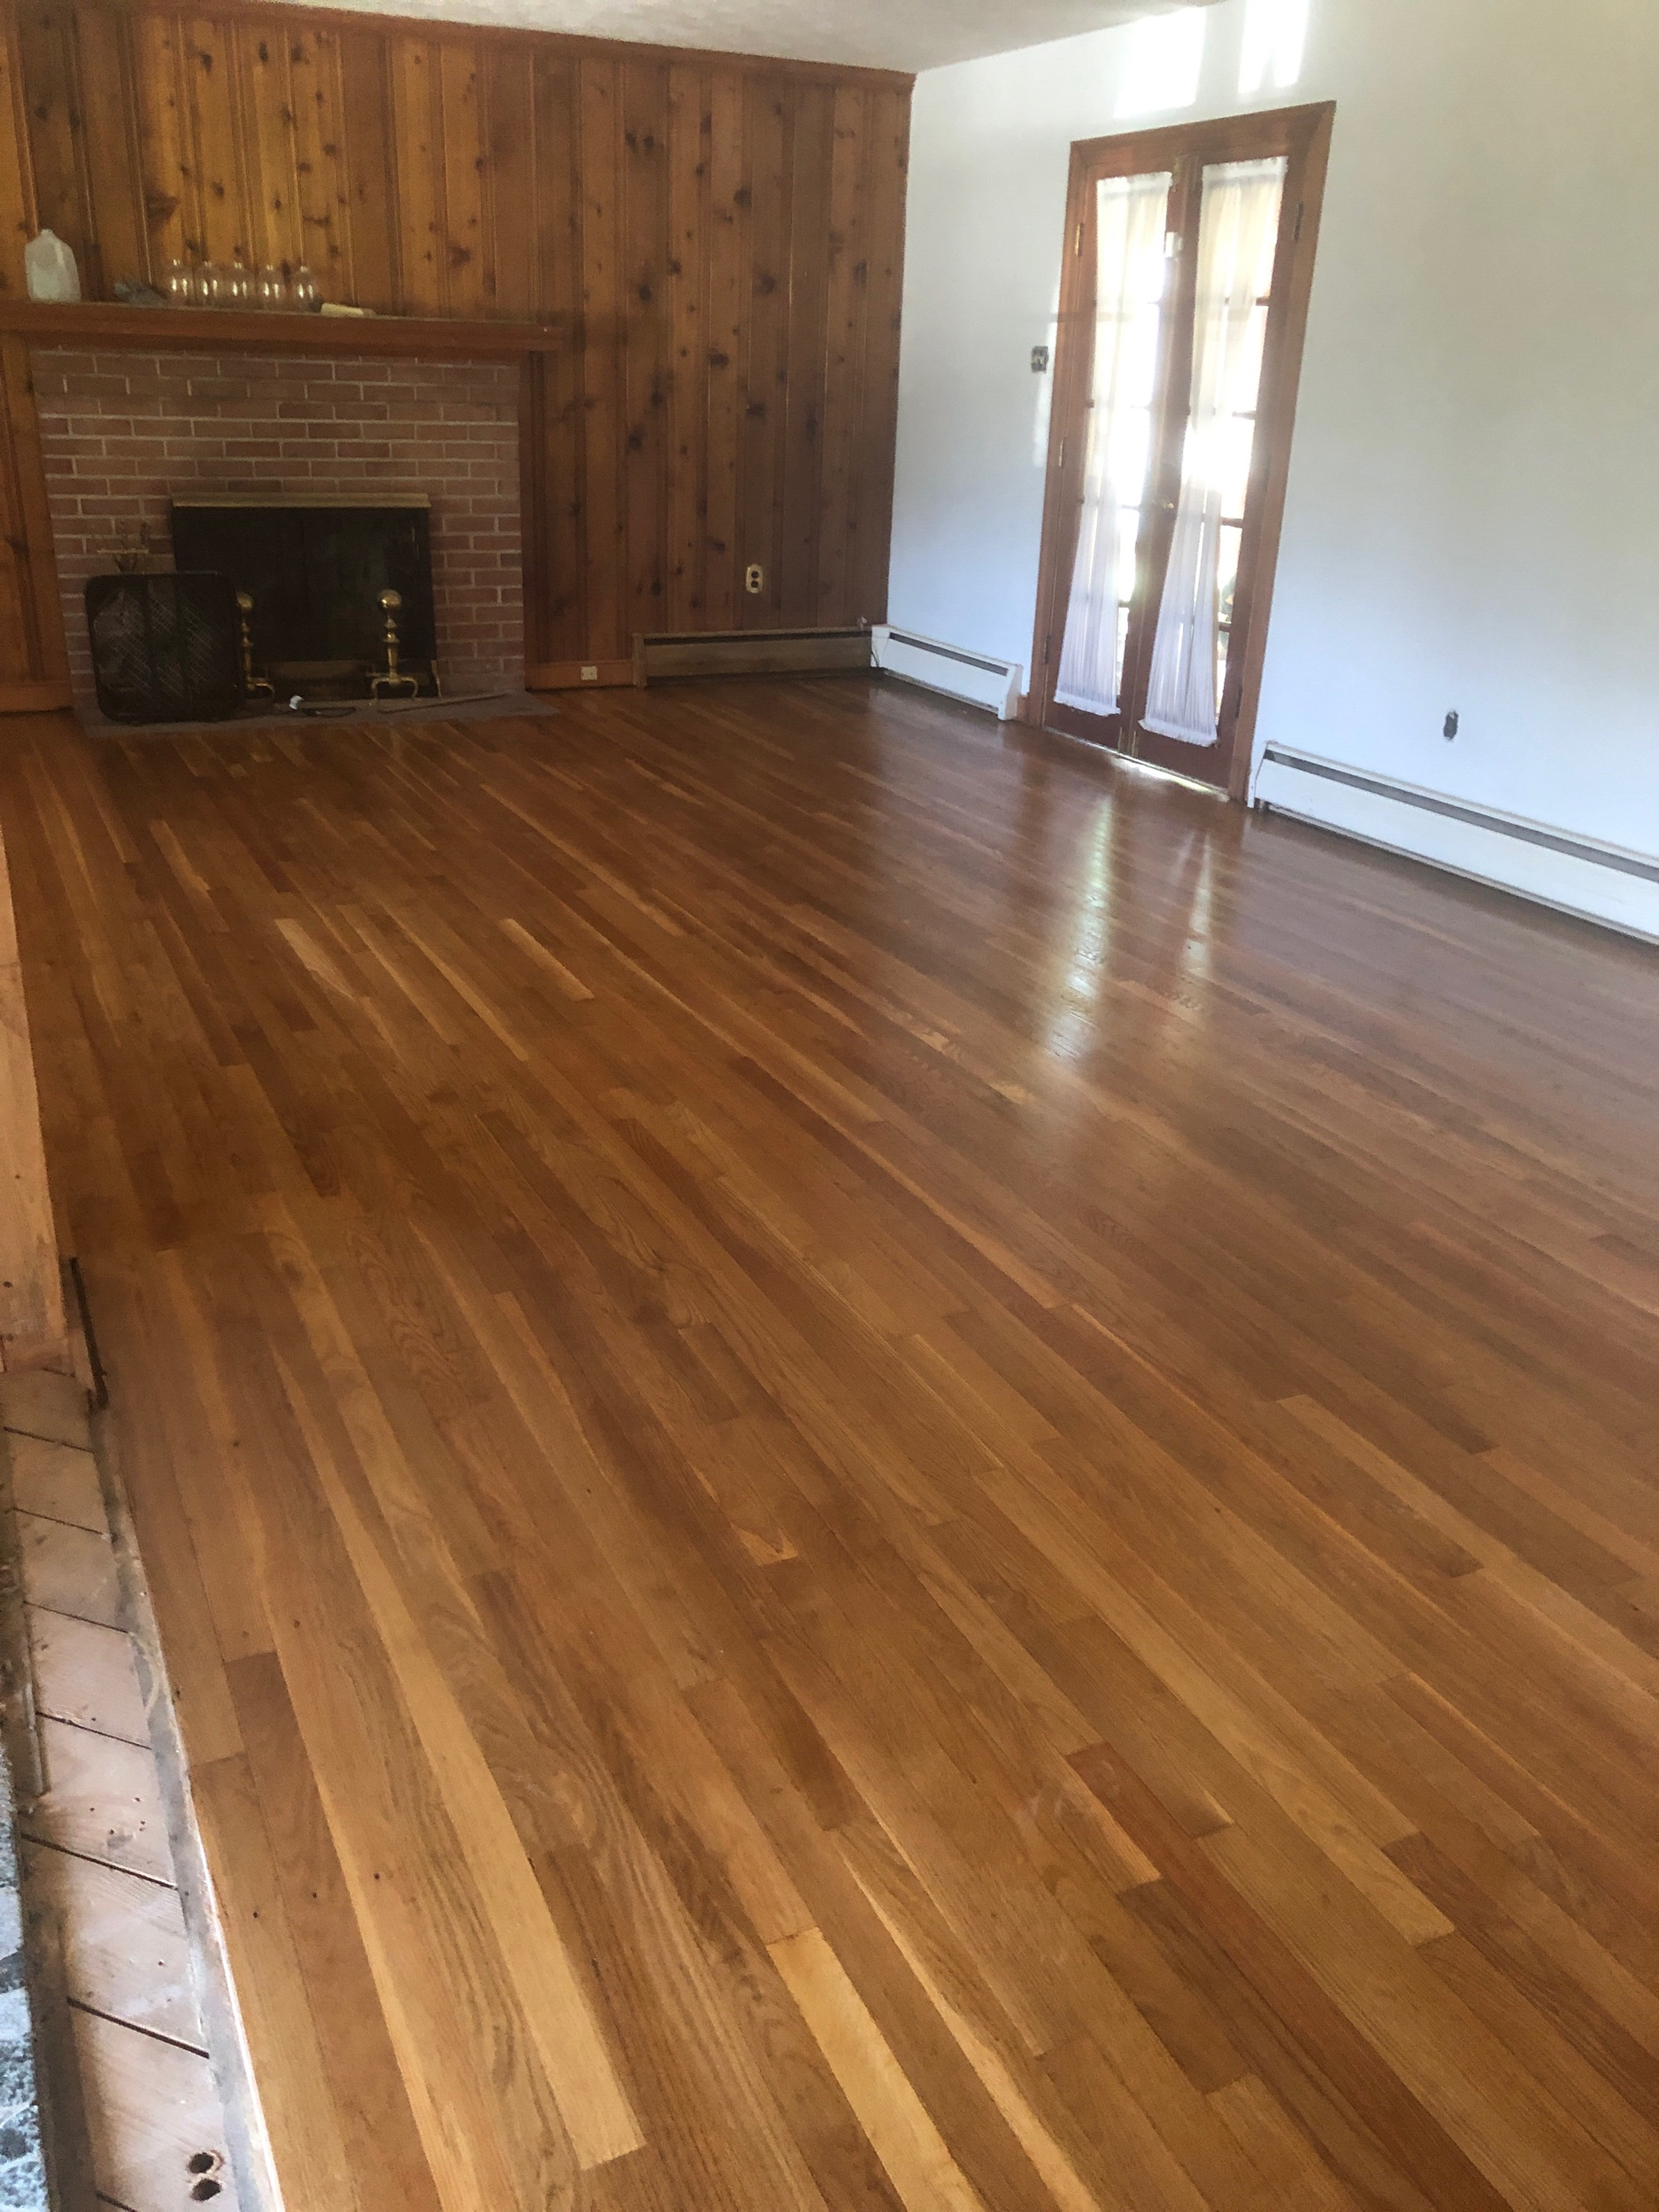 (Finished floors looking great!)